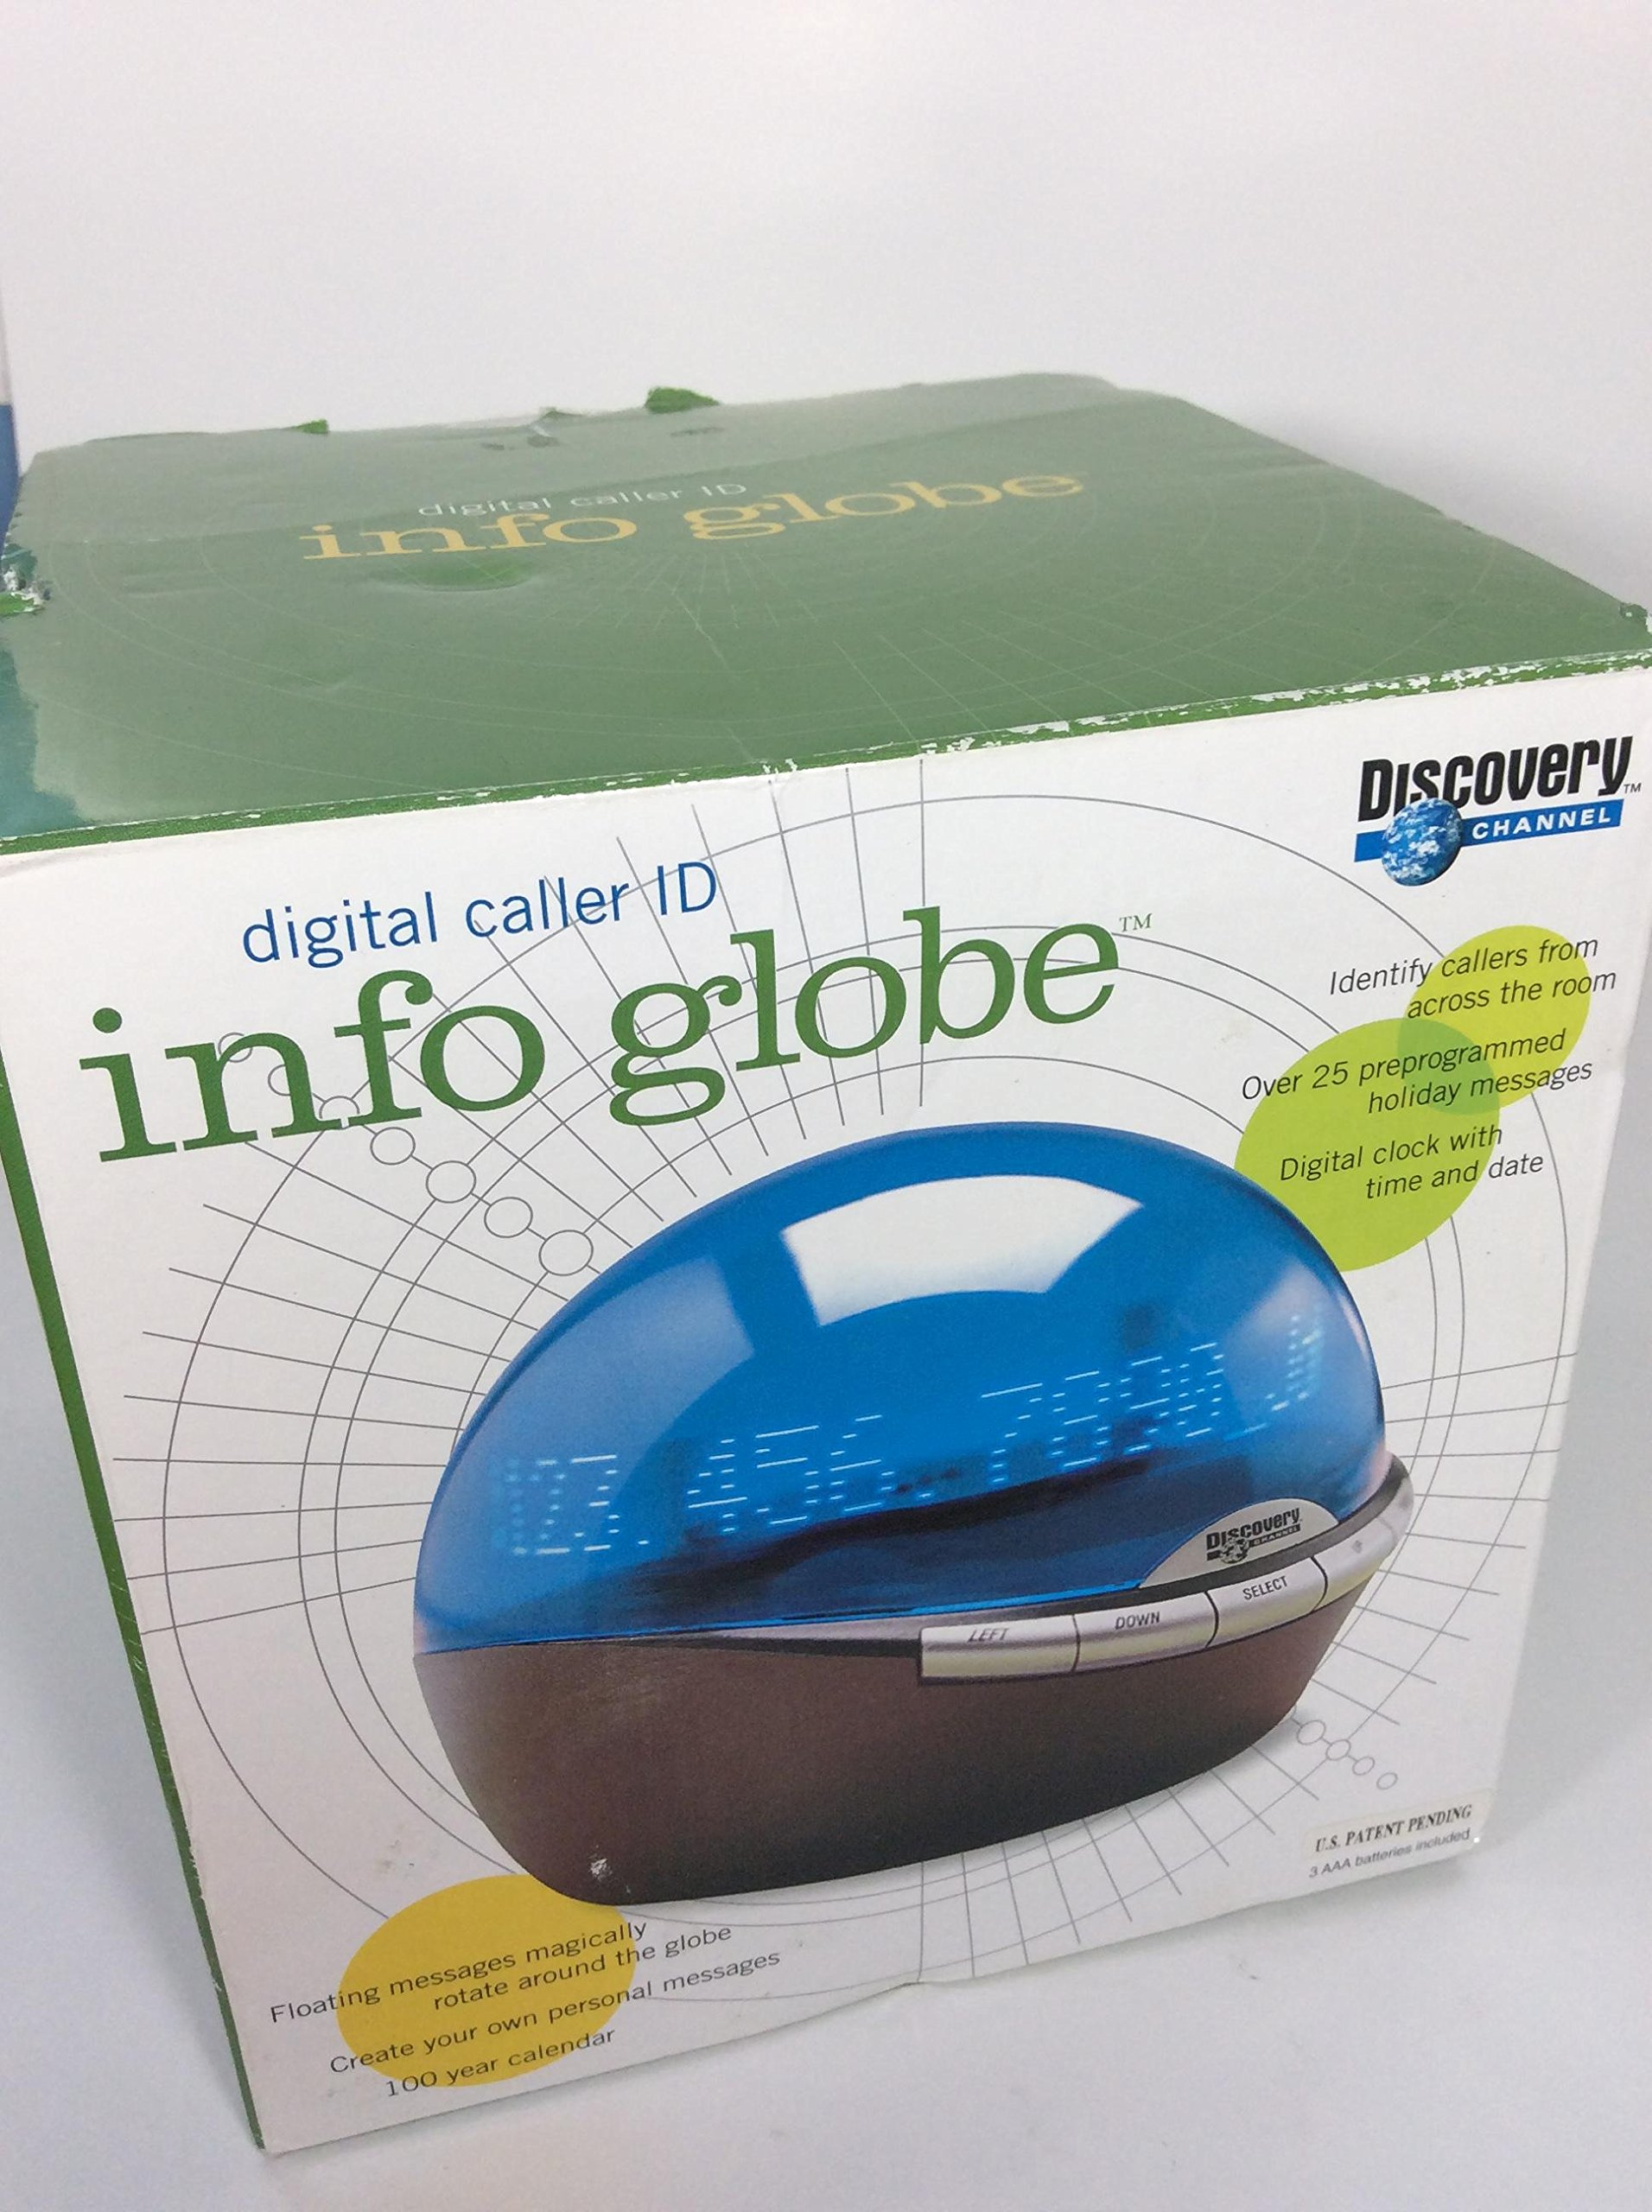 Digital Caller Id Info Globe with Clock by Discovery Channel (Image #3)